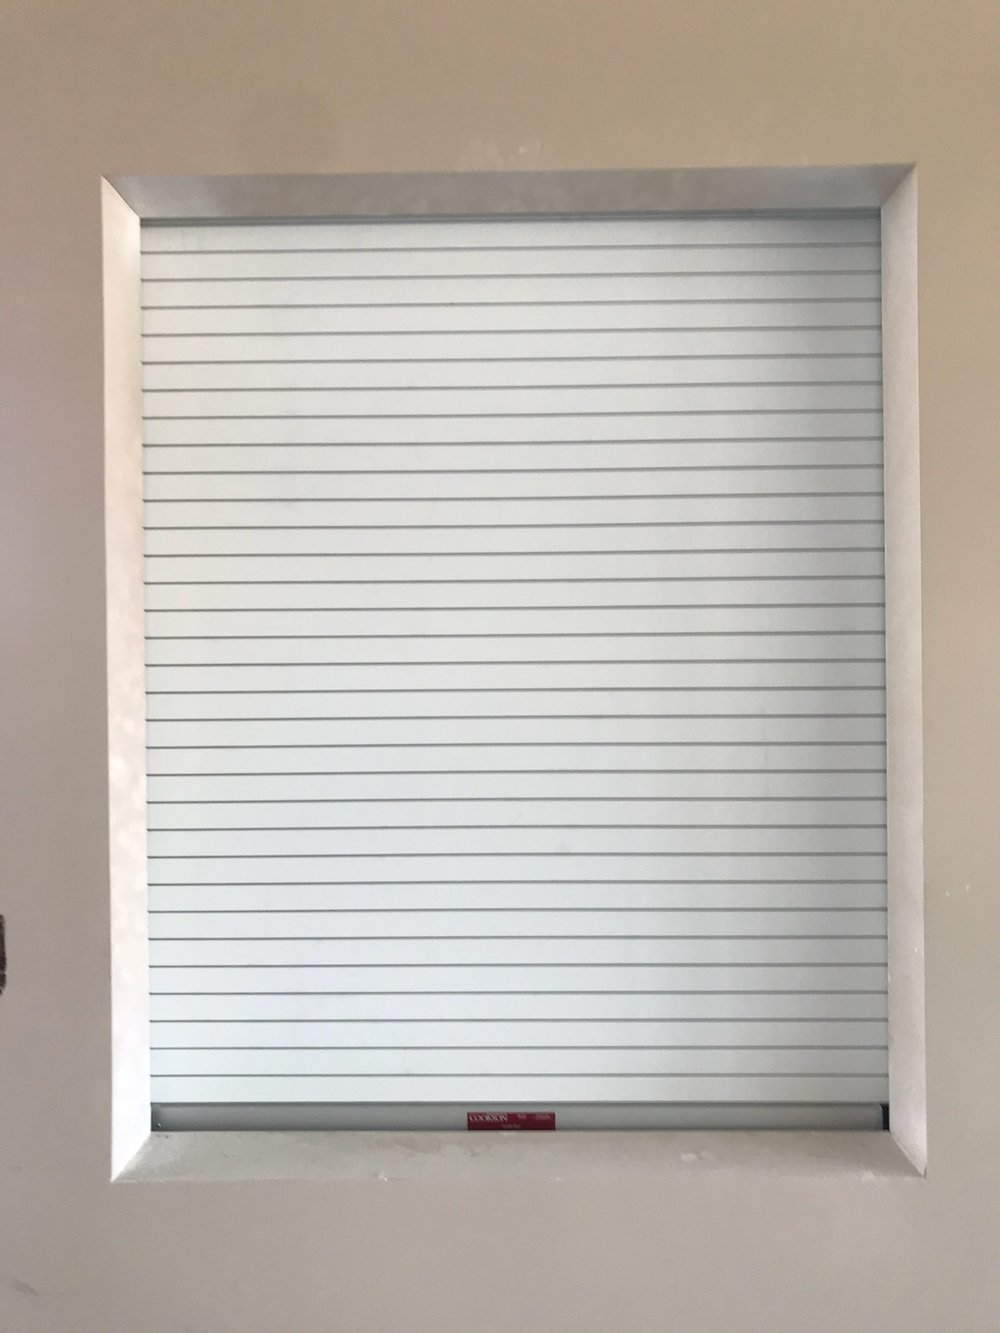 Counter Shutters - Counter Shutter Doors are designed for interior or exterior applications.  Often used in lobbies or as service windows, counter shutters provide maximum security, practical use, and cosmetic design.